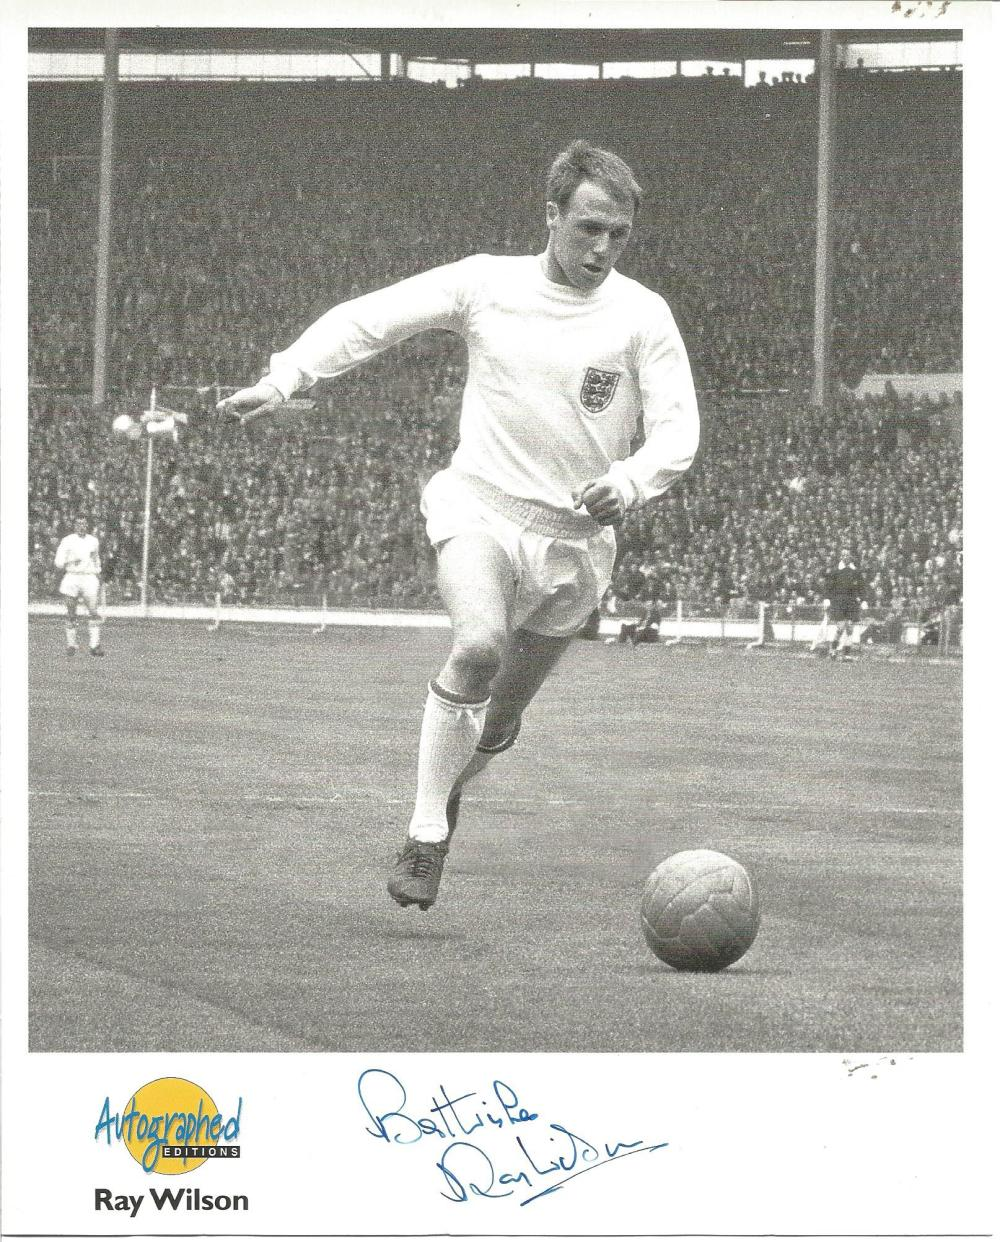 Football Ray Wilson signed 10x8 Autographed edition b/w photo pictured in action for England. Good